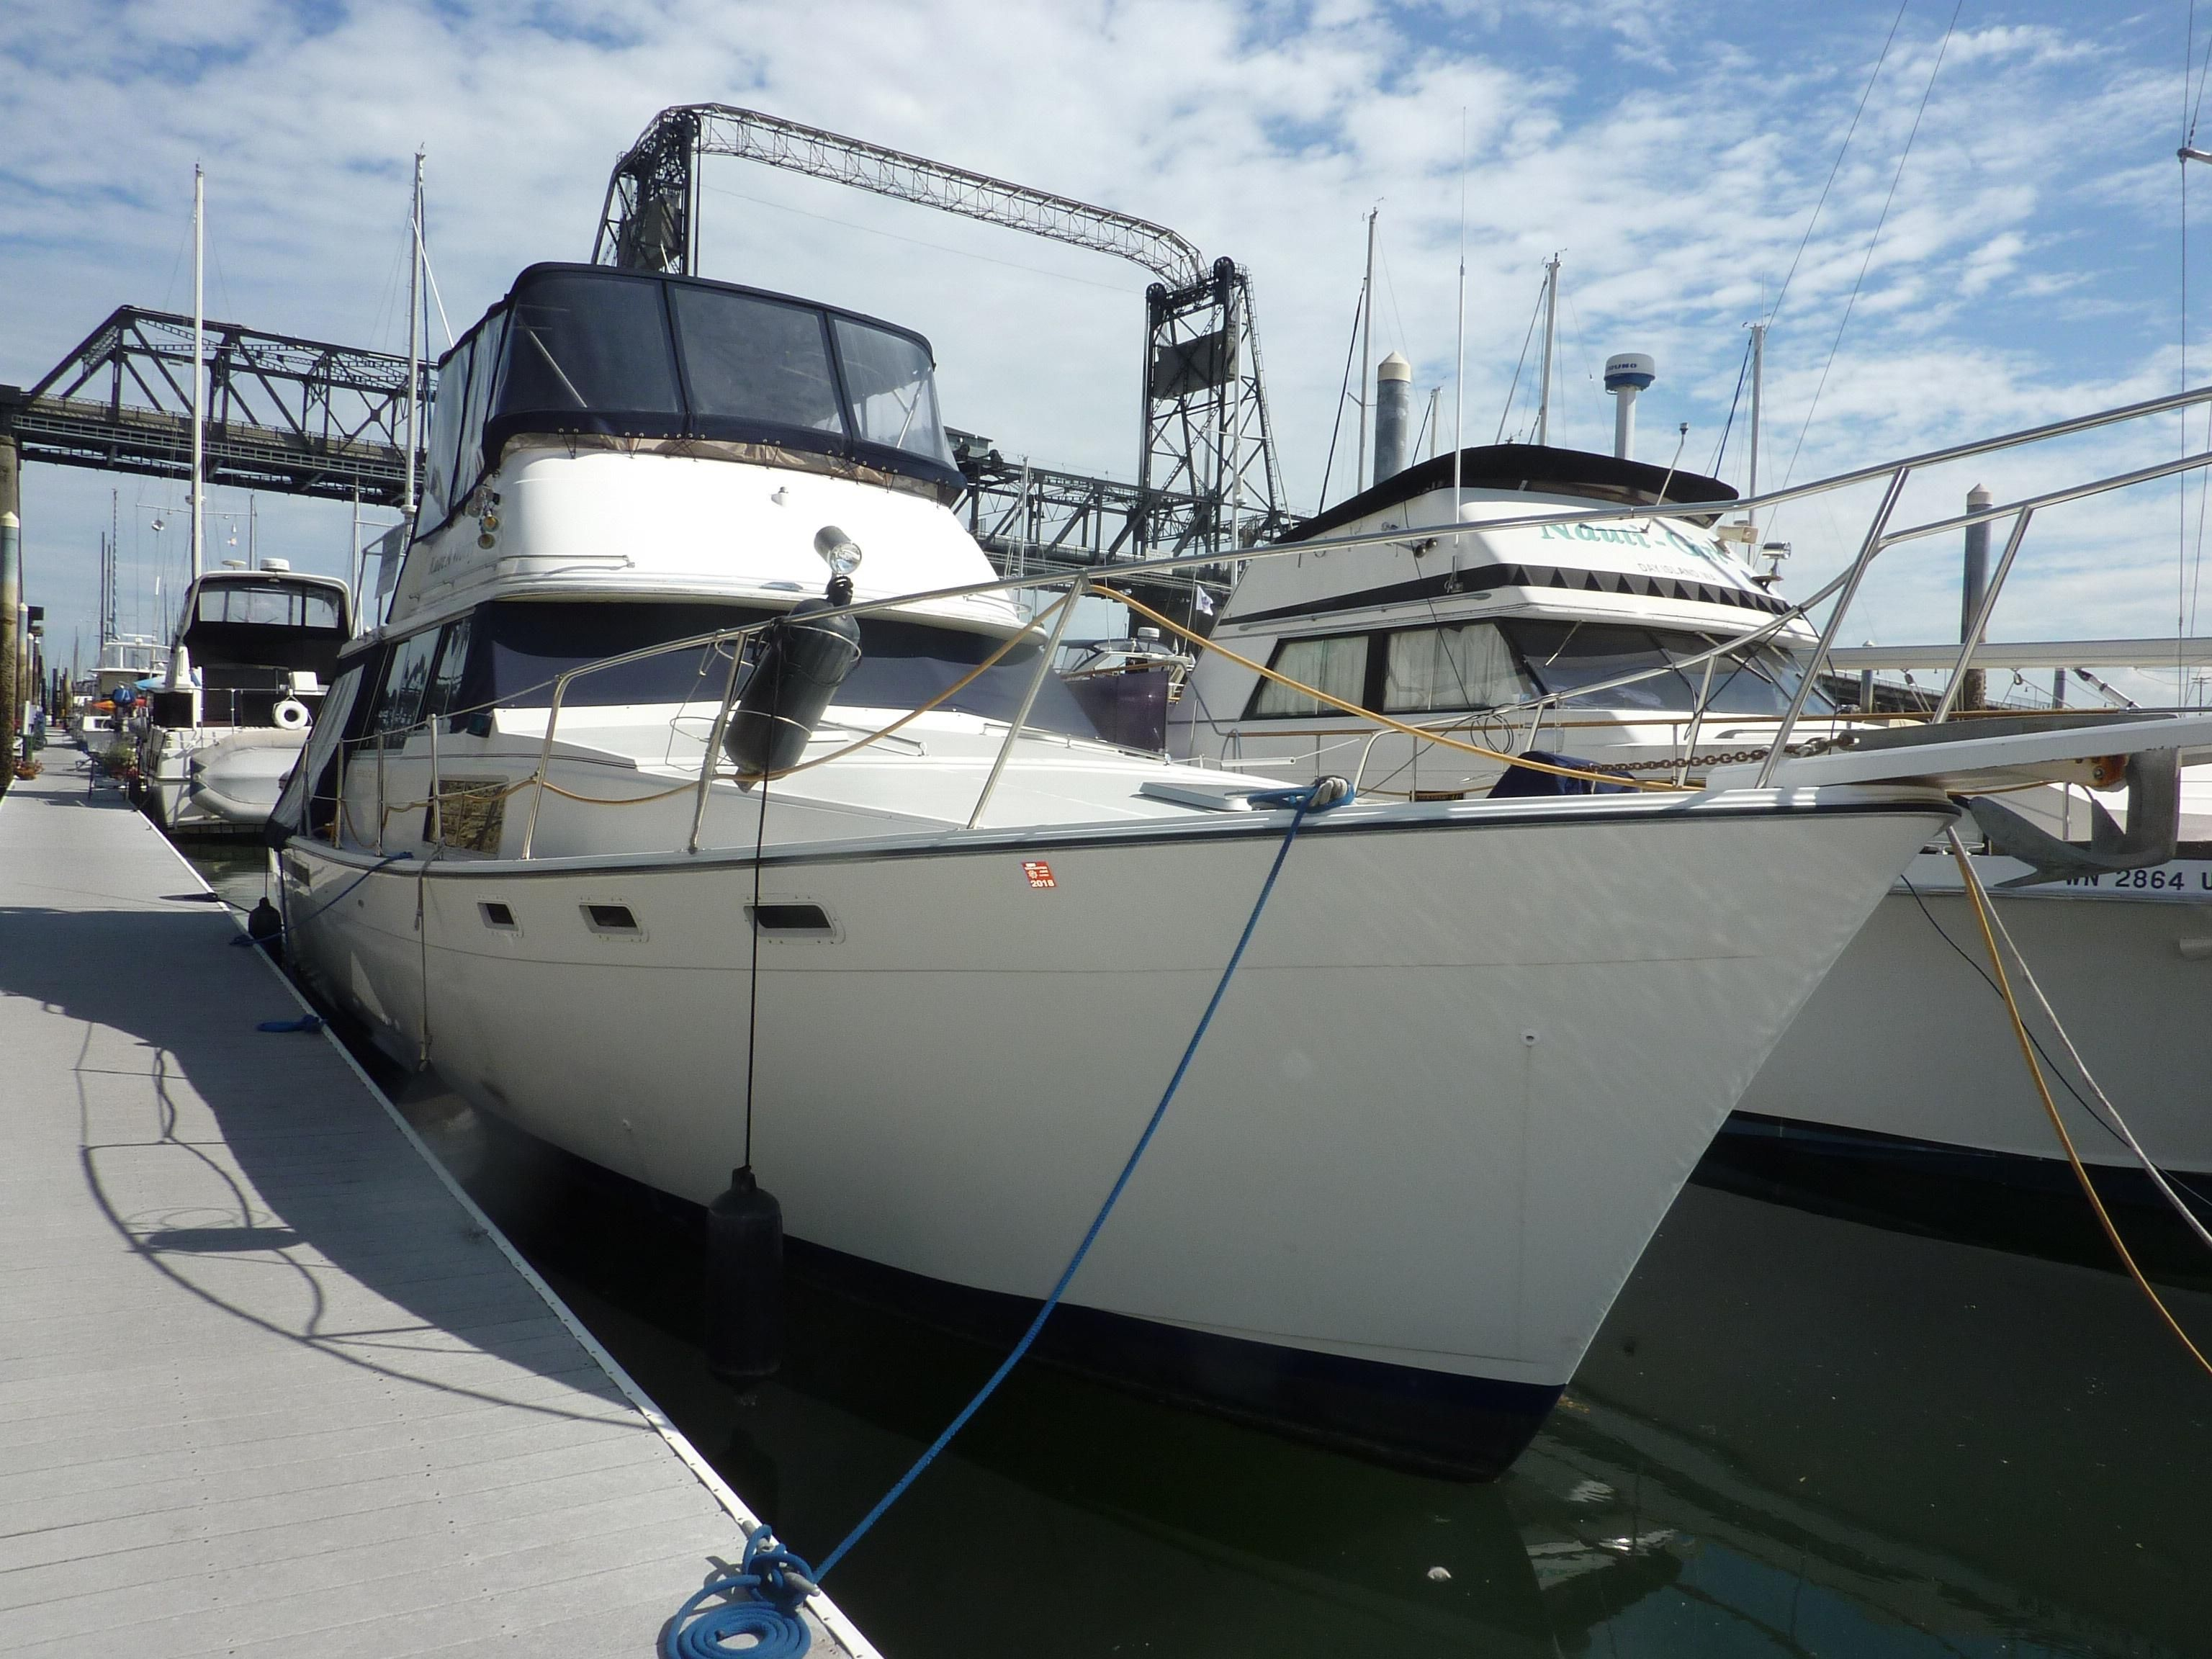 1983 bayliner 3870 motoryacht power boat for sale www for Sailboat outboard motor size calculator